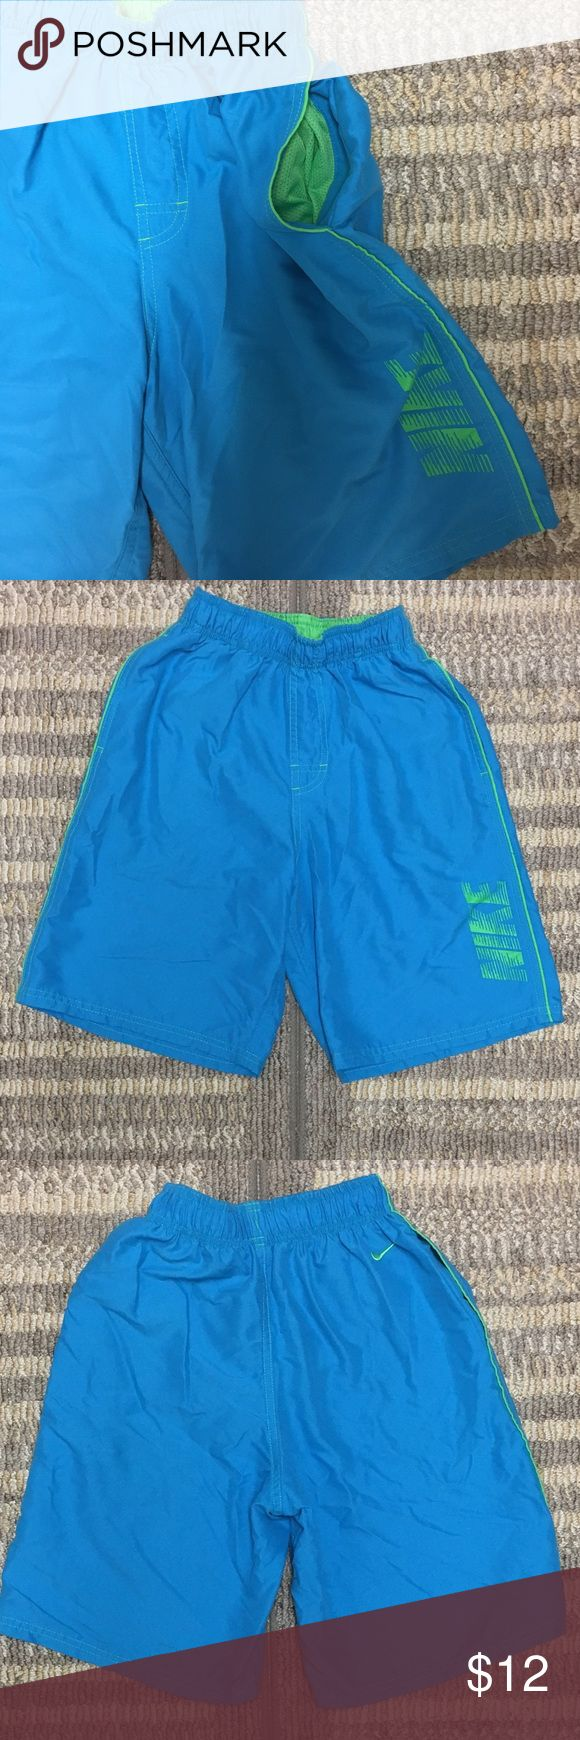 Nike Swim Trunks Nike Swim Trunks in Size Medium. Light blue color with Nike symbol on the back and Nike Logo on front and green underwear. Worn only twice but still in good condition. Nike Swim Swim Trunks